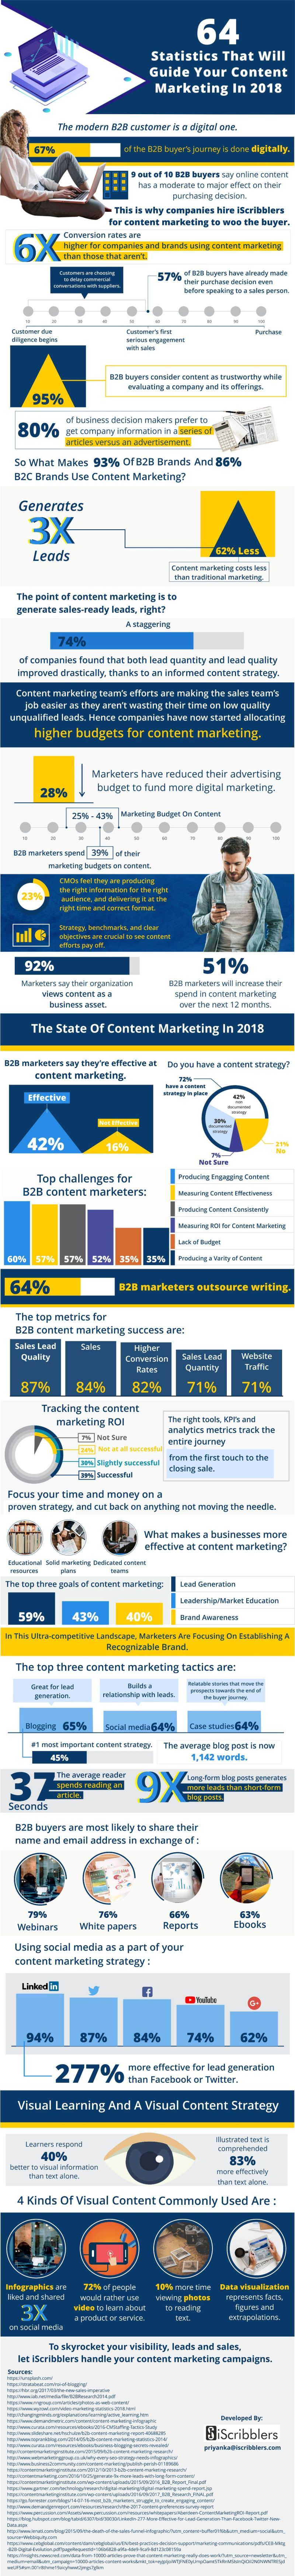 Infographic: Content Marketing Statistics